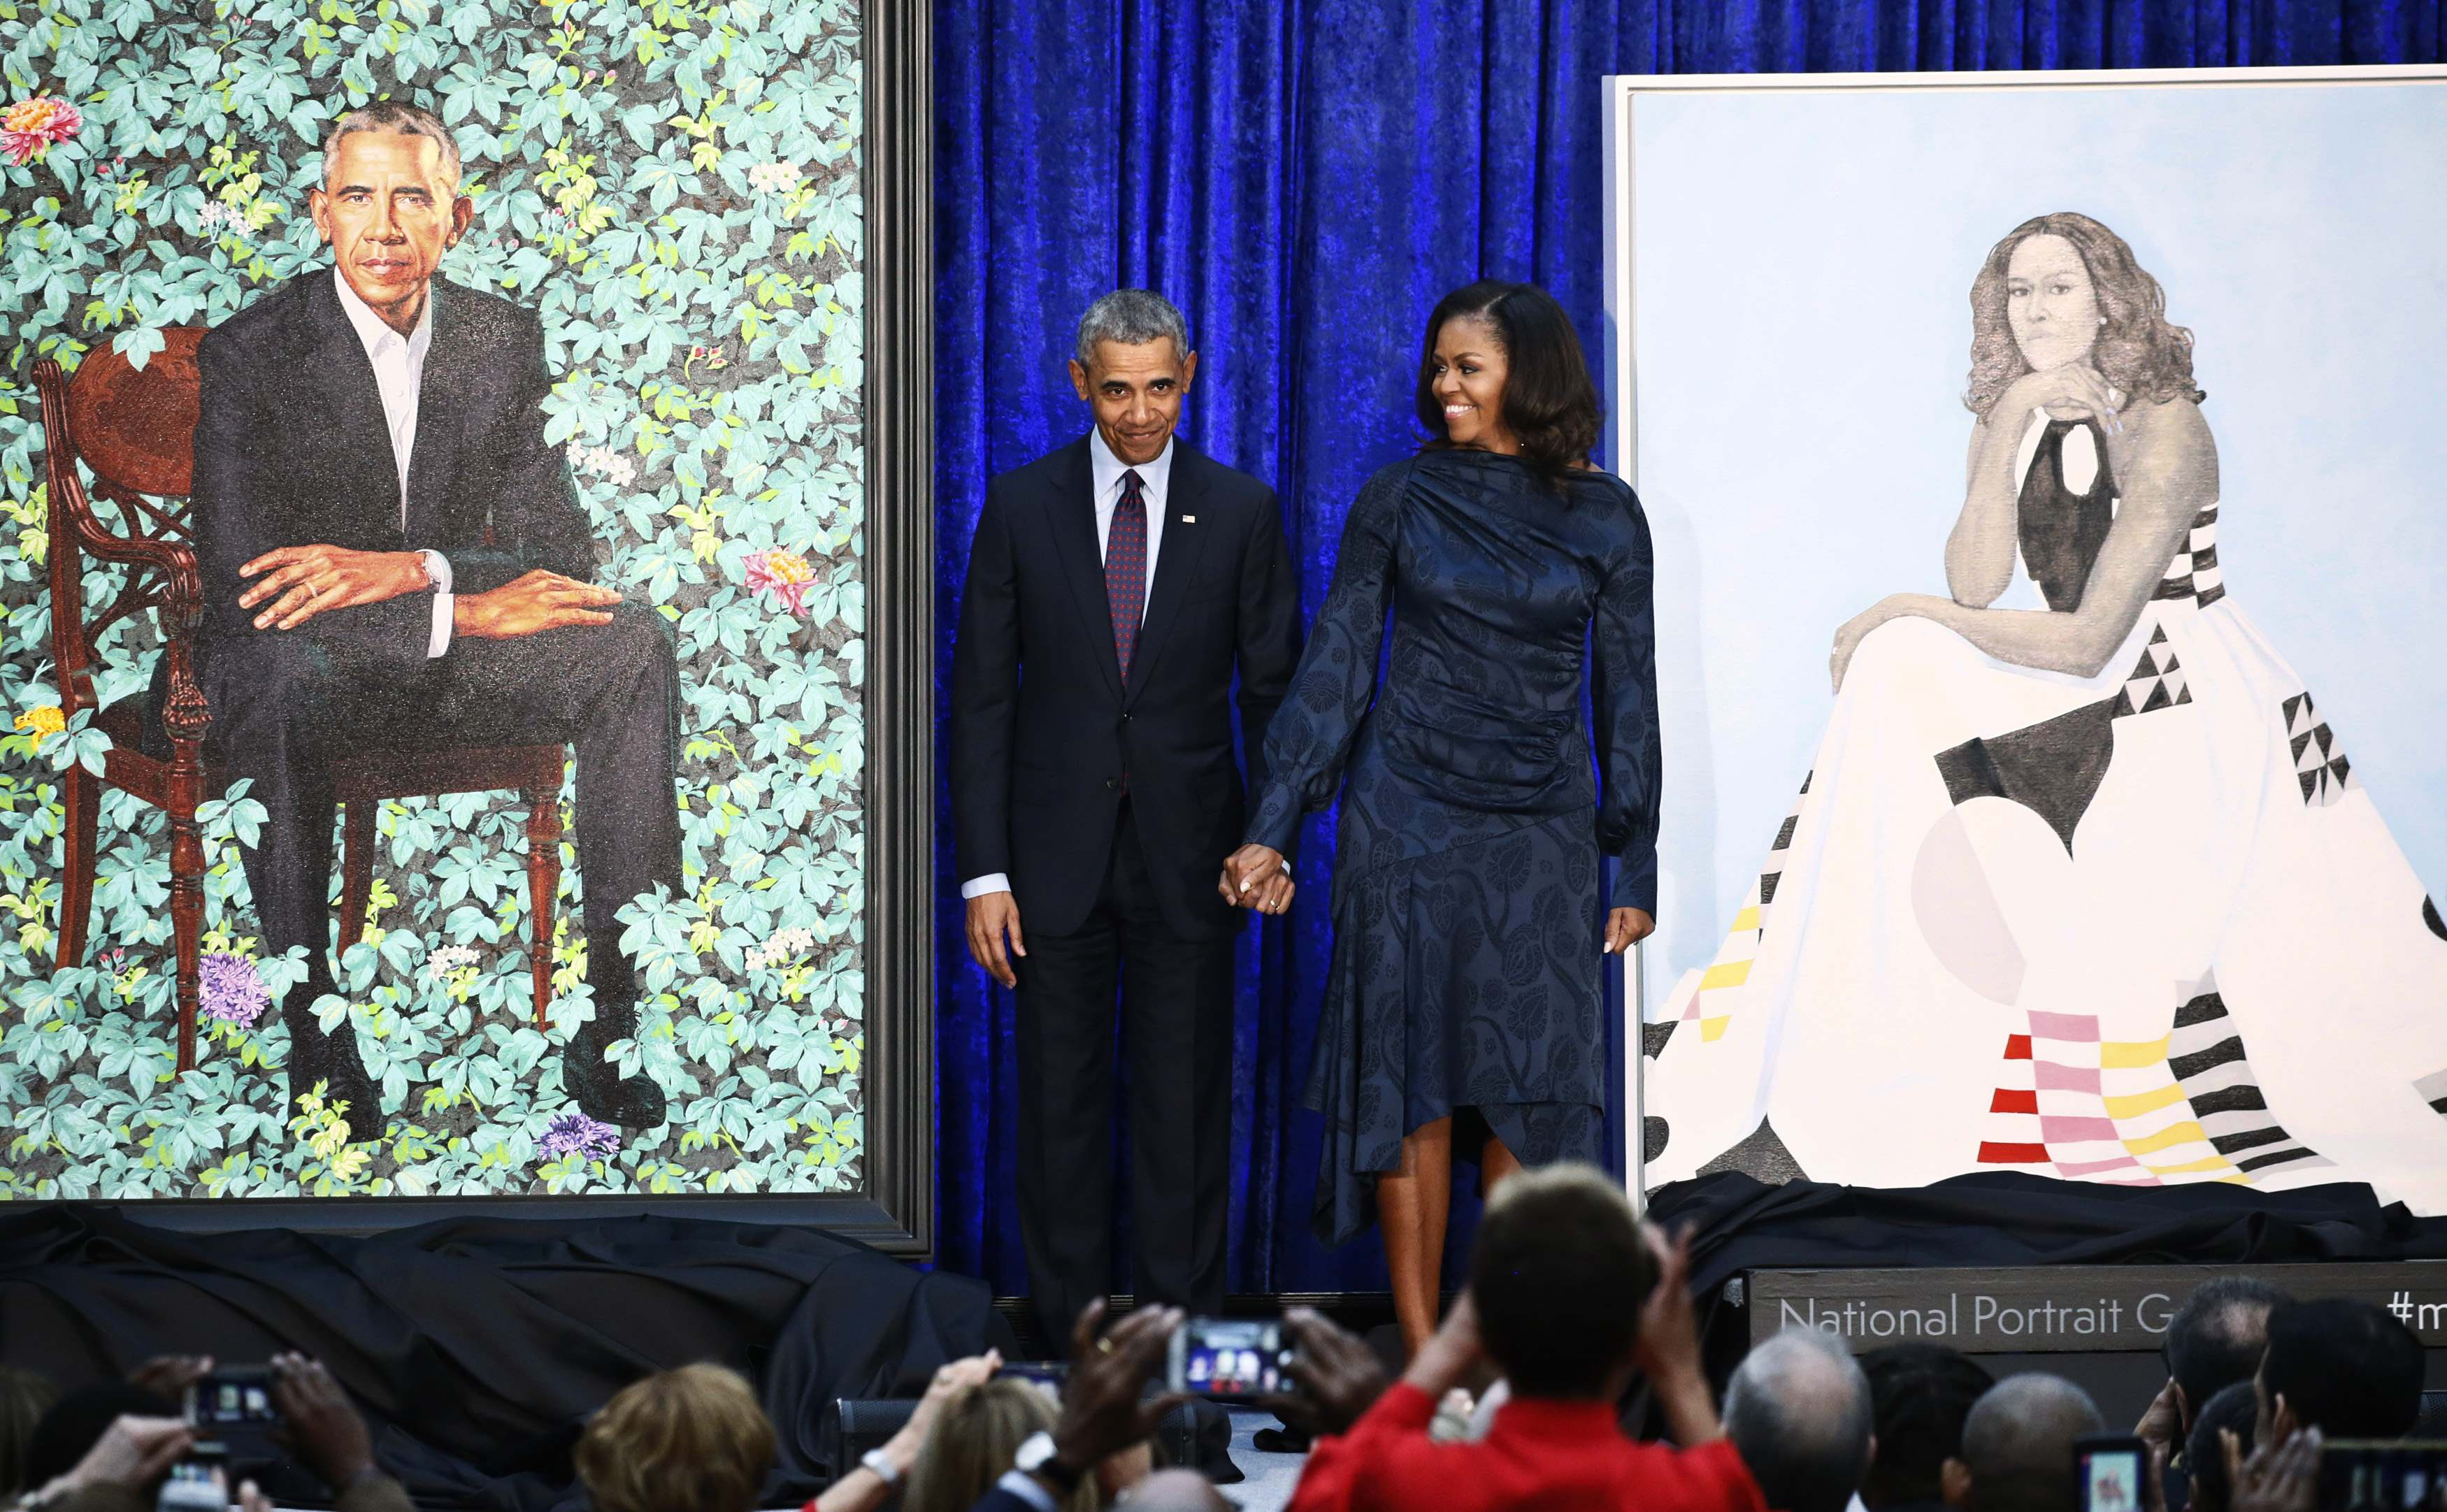 Former US President Barack Obama and former first lady Michelle Obama hold hands between their portraits during an unveiling ceremony at the Smithsonian's National Portrait Gallery in Washington, February 12, 2018. — Reuters pic